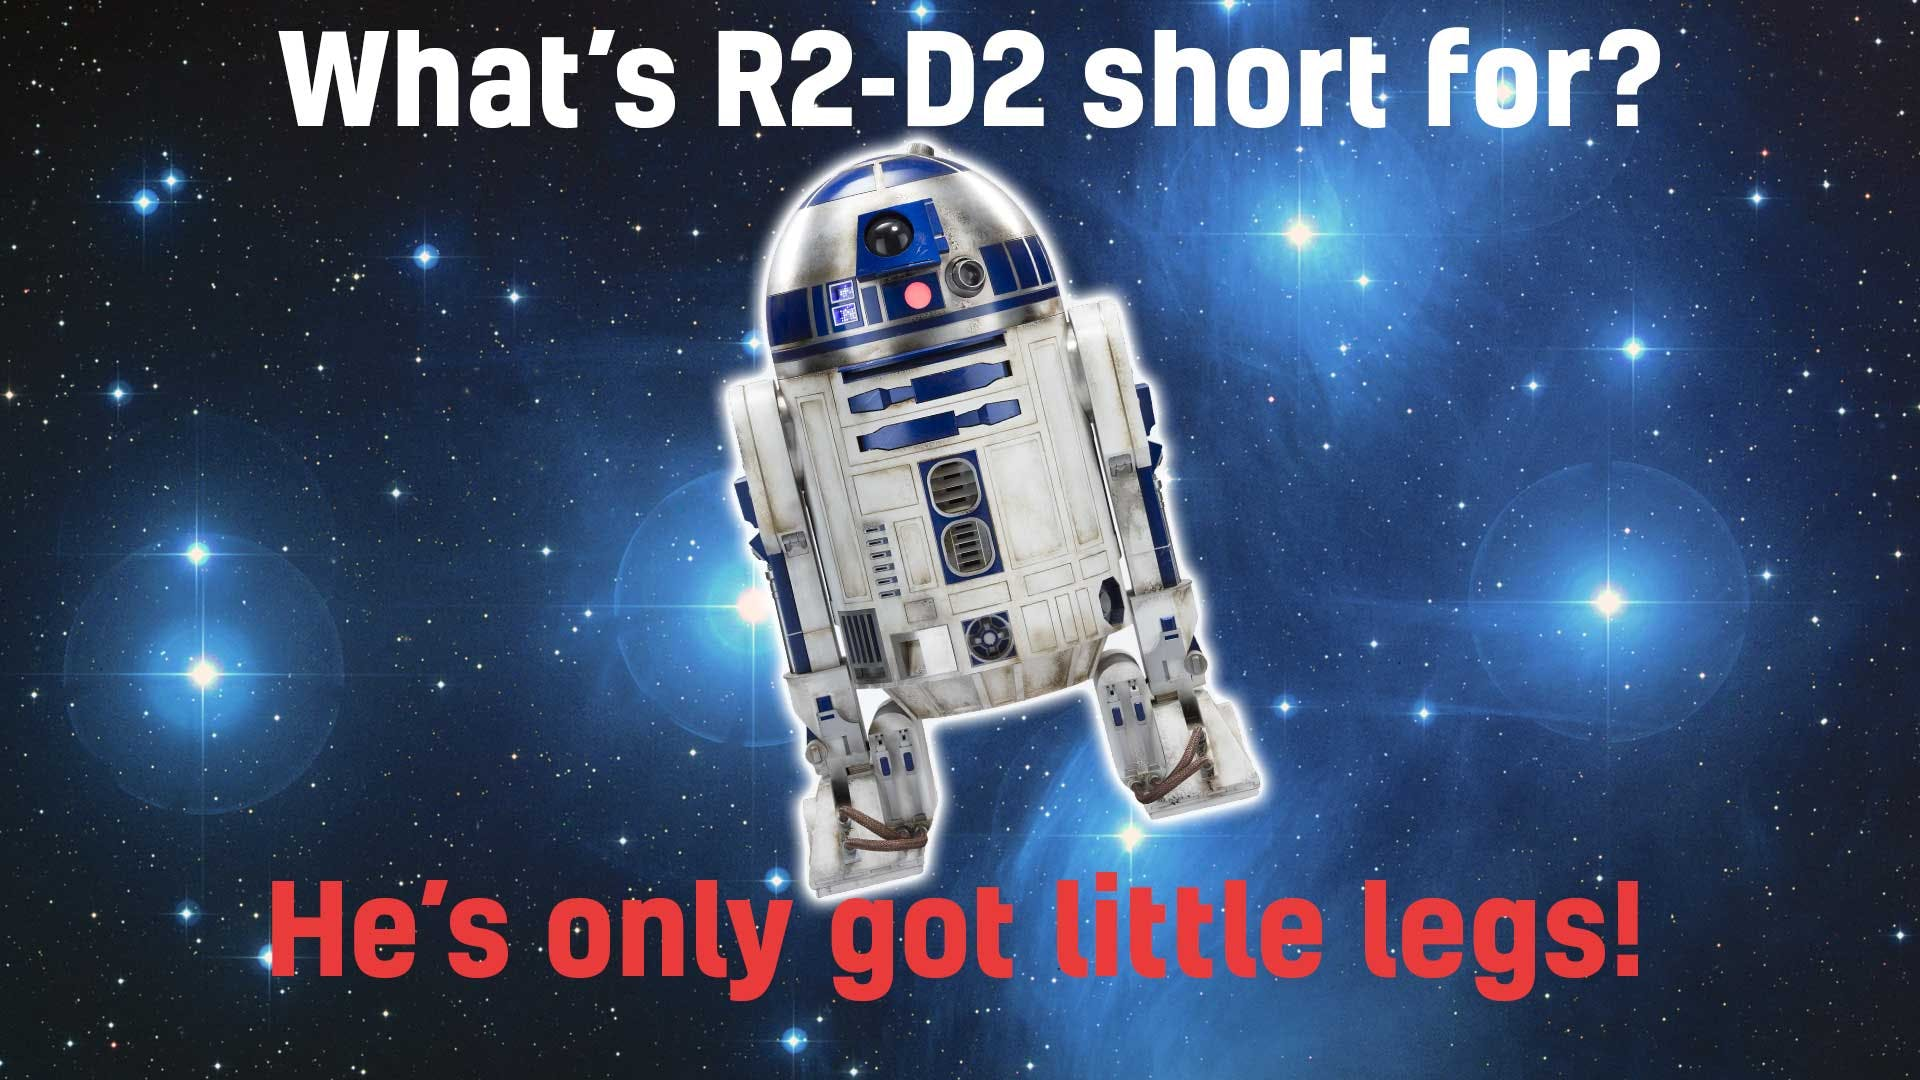 What's R2-D2 short for?